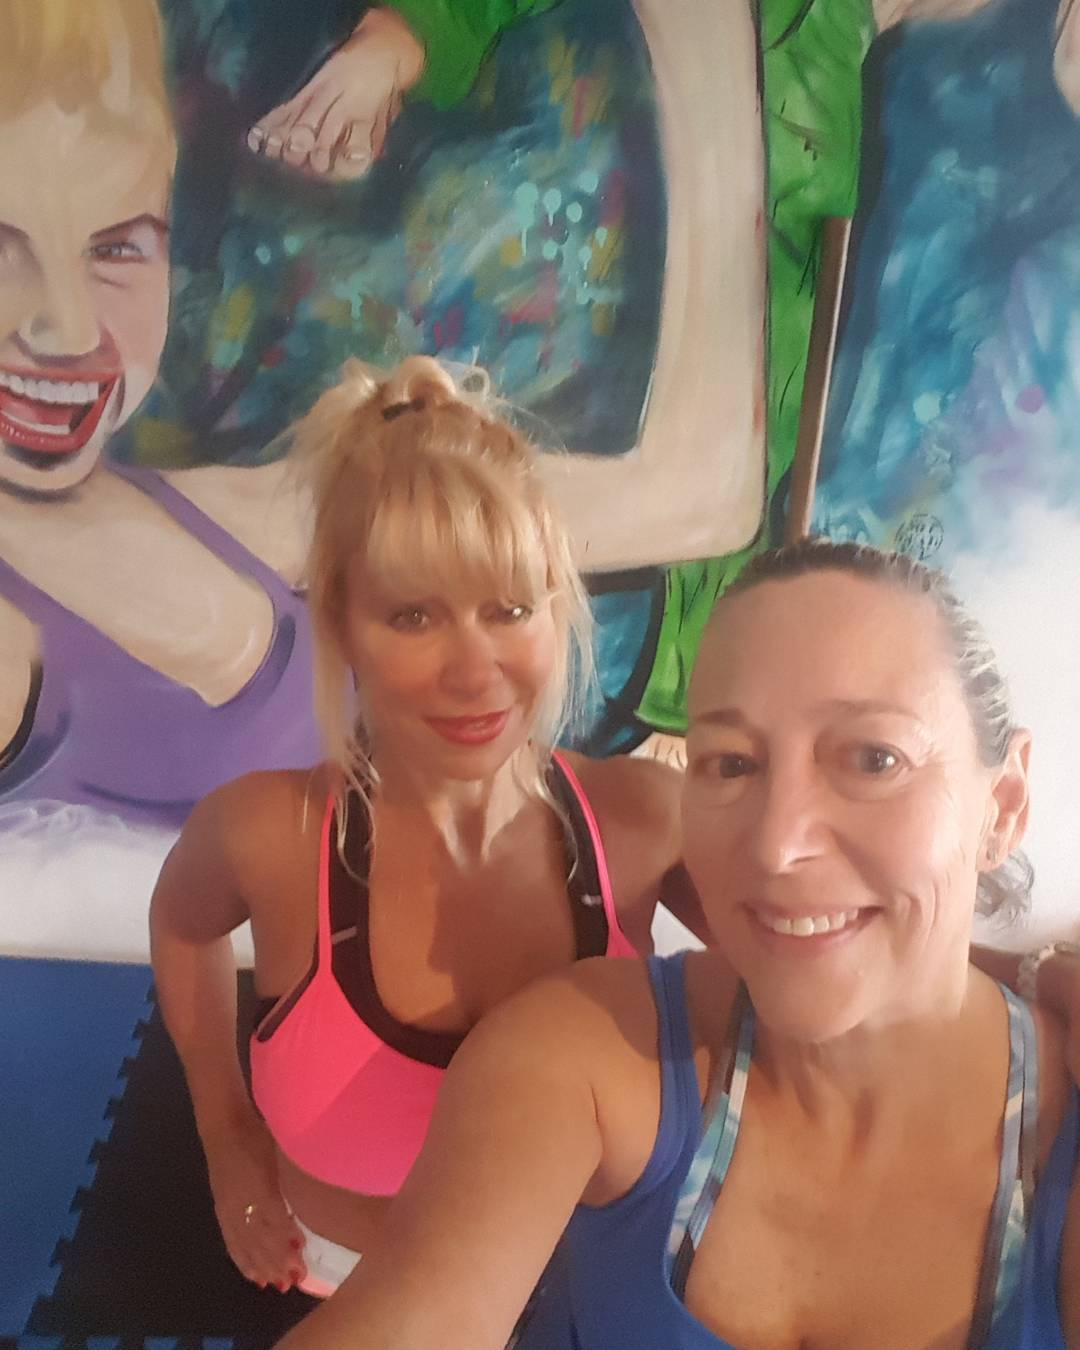 Monday morning Back in the gym with my new very glam personal trainer Tina Age before beauty here in this photo!